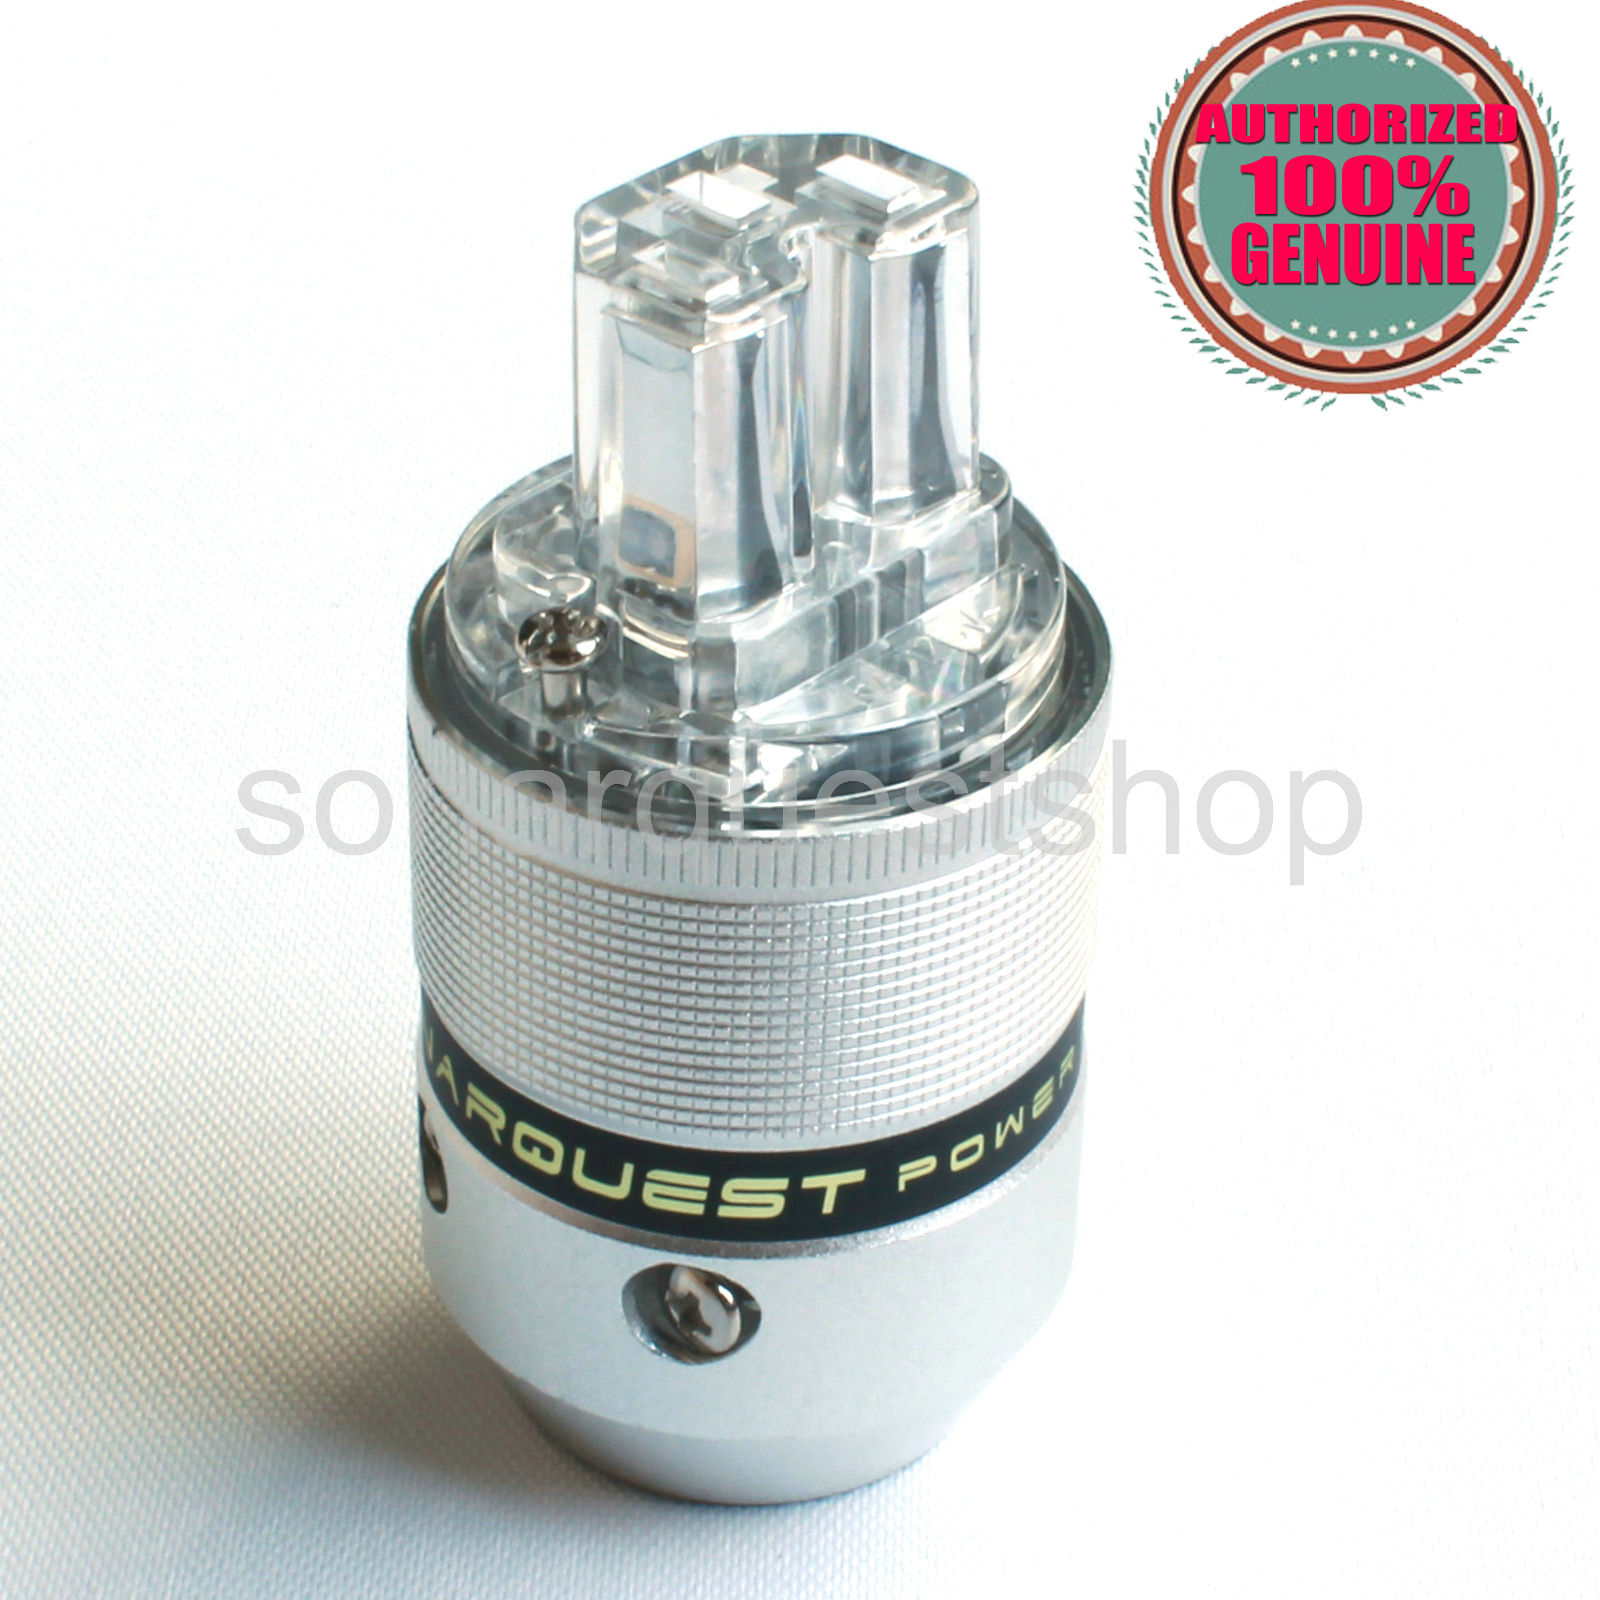 SONARQUEST C25 R(T) Rhodium Plated UT Aluminum alloy IEC Connector